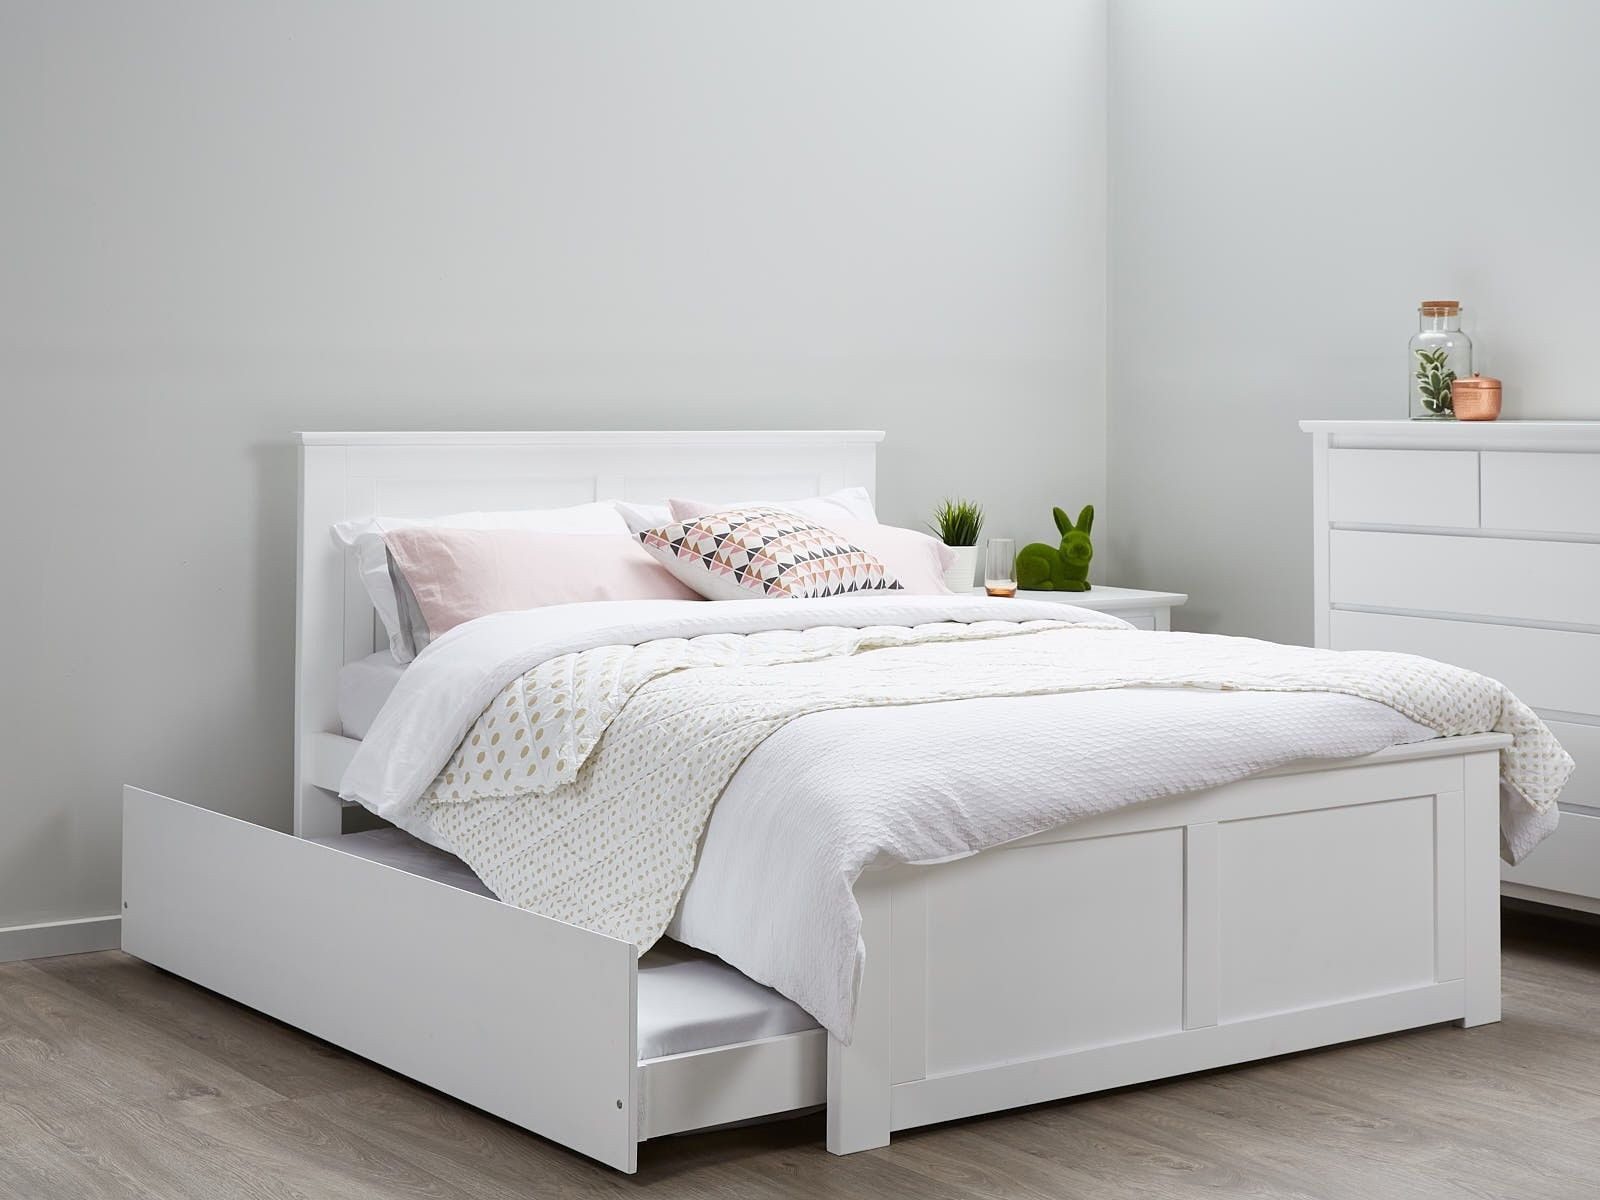 Double Size Bed Coco White Double Bed With Trundle Hardwood Frame Home